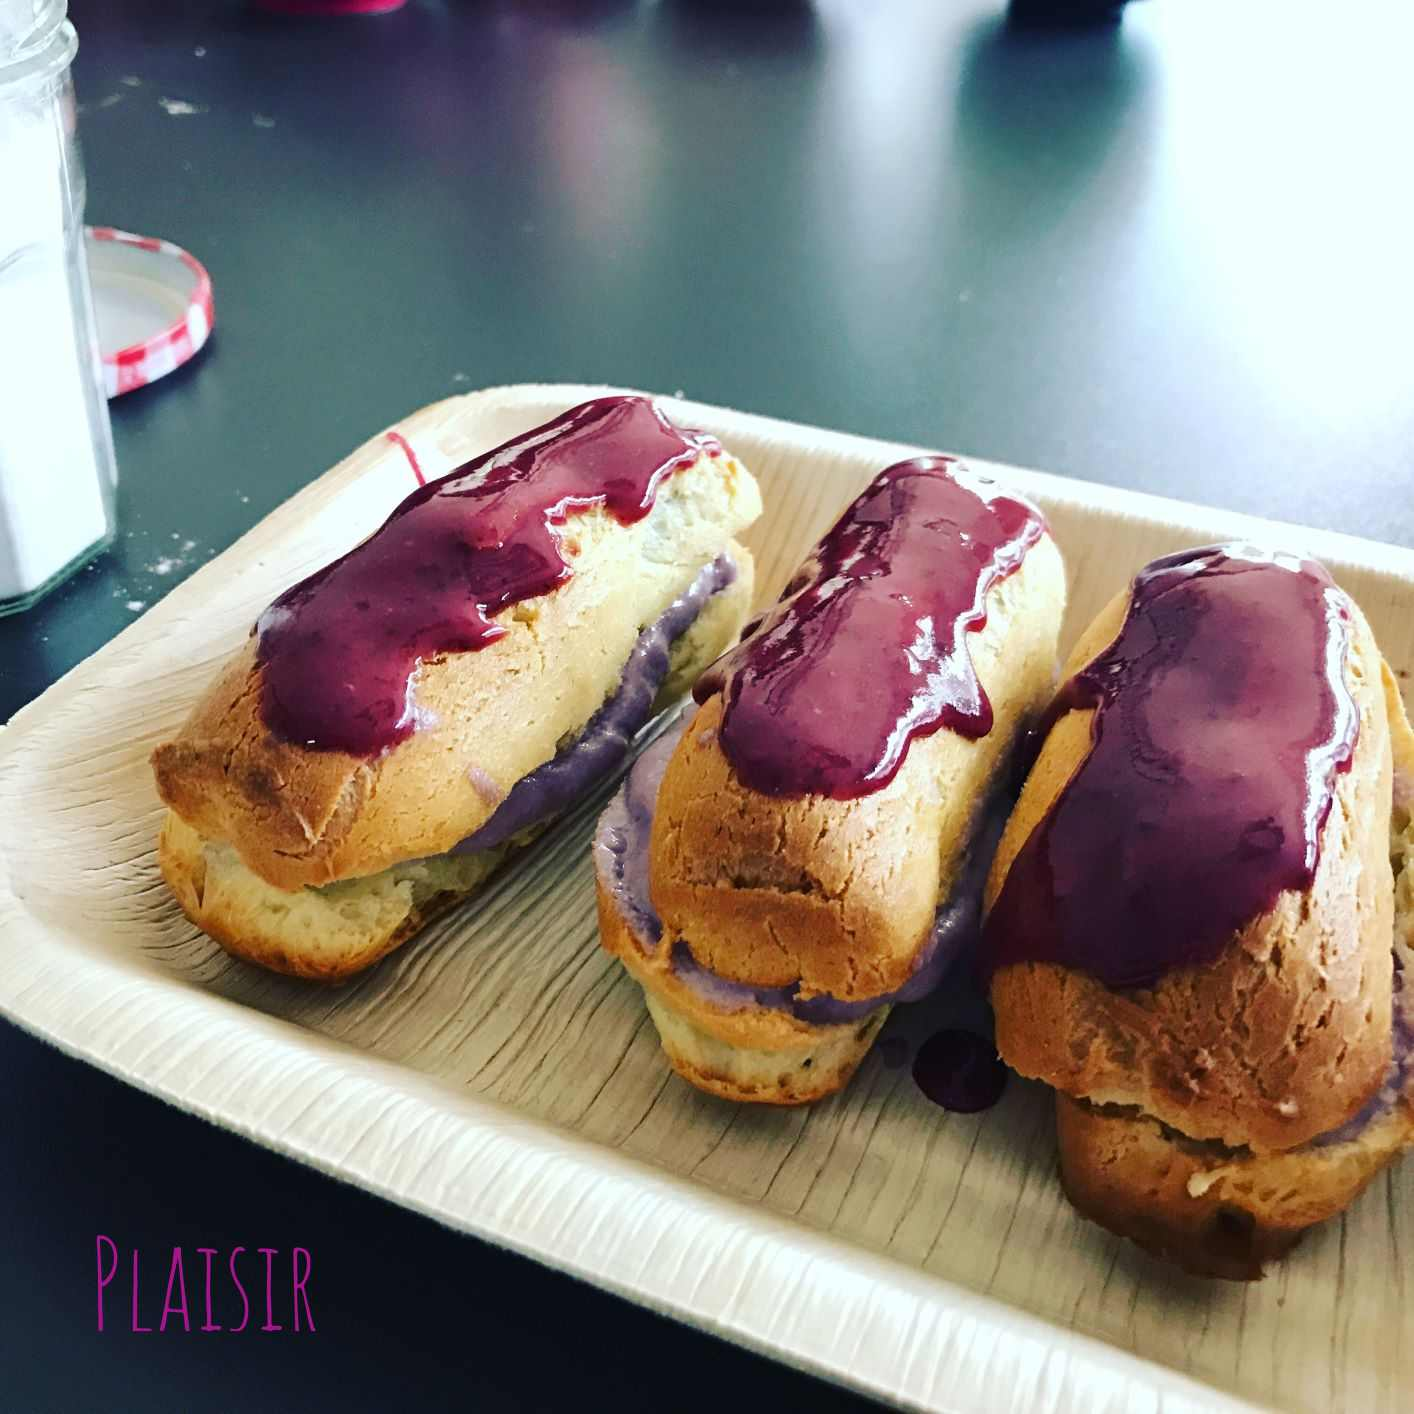 A savoury French Patisserie that illustrate pleasure we can have everyday